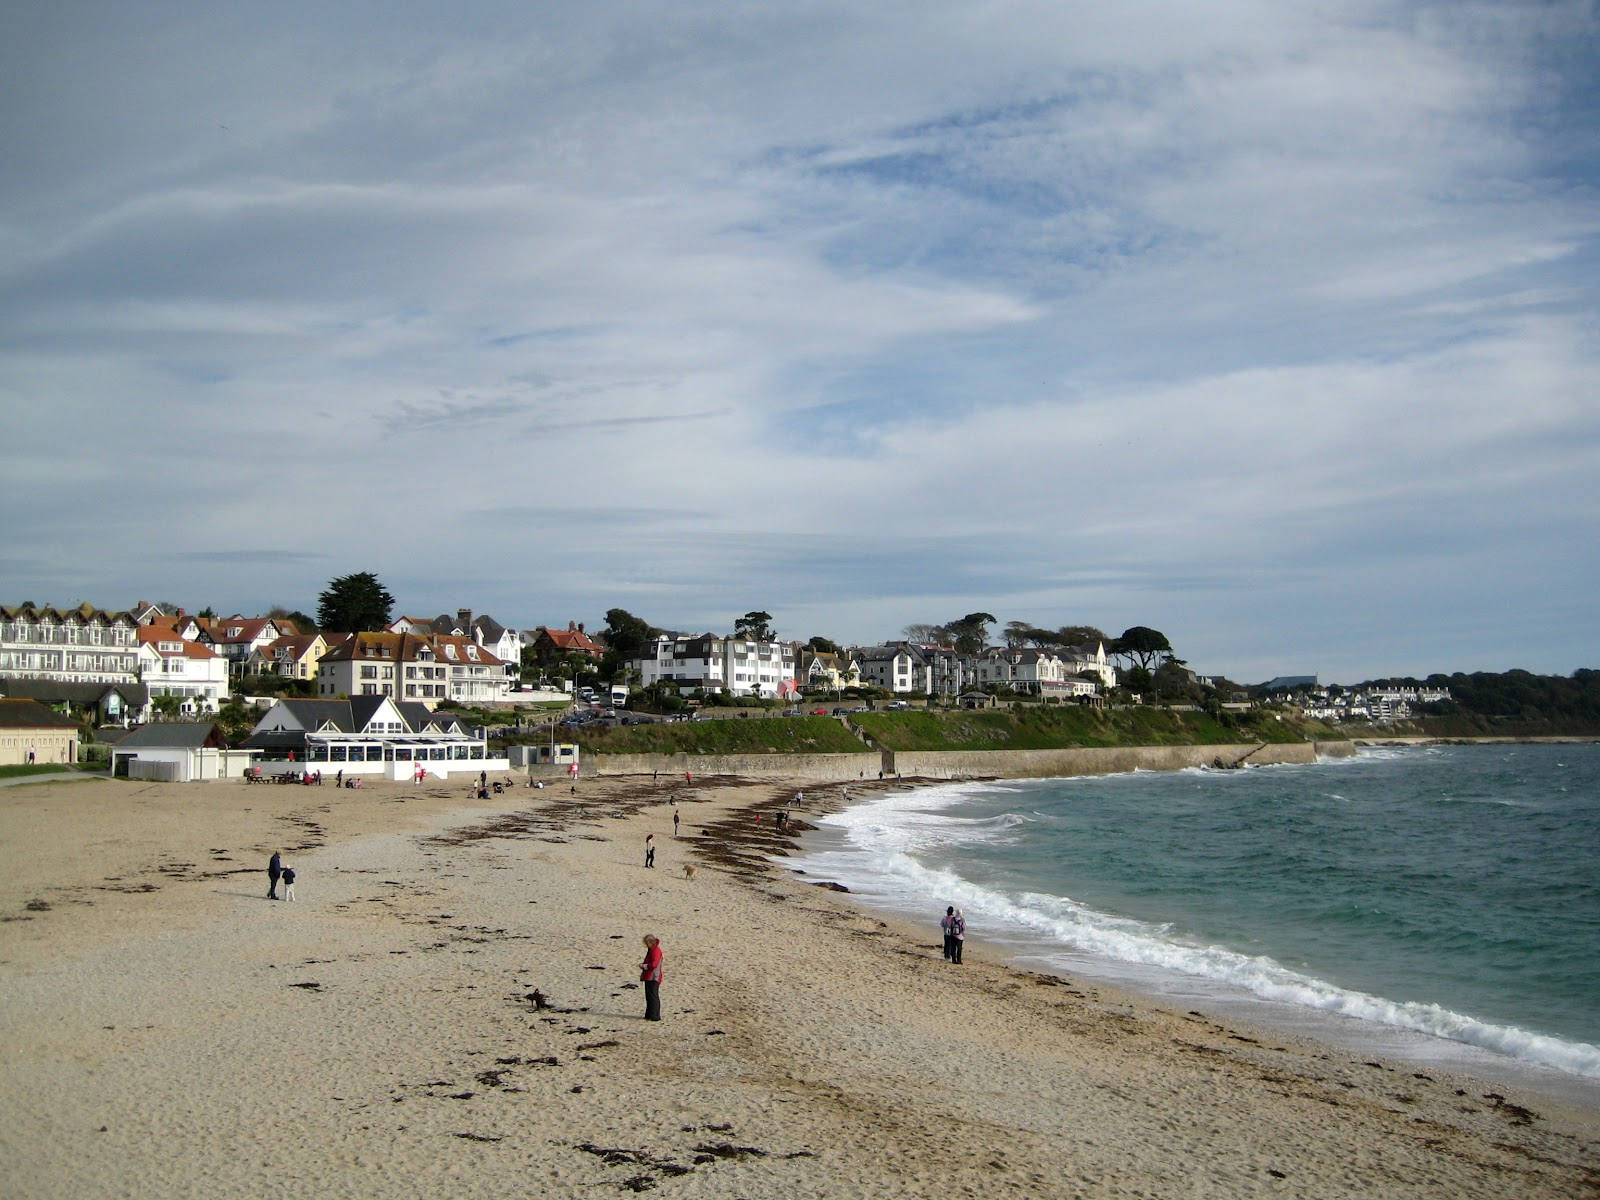 http://upload.wikimedia.org/wikipedia/commons/e/e1/Gyllyngvase_Beach,_Falmouth.jpg